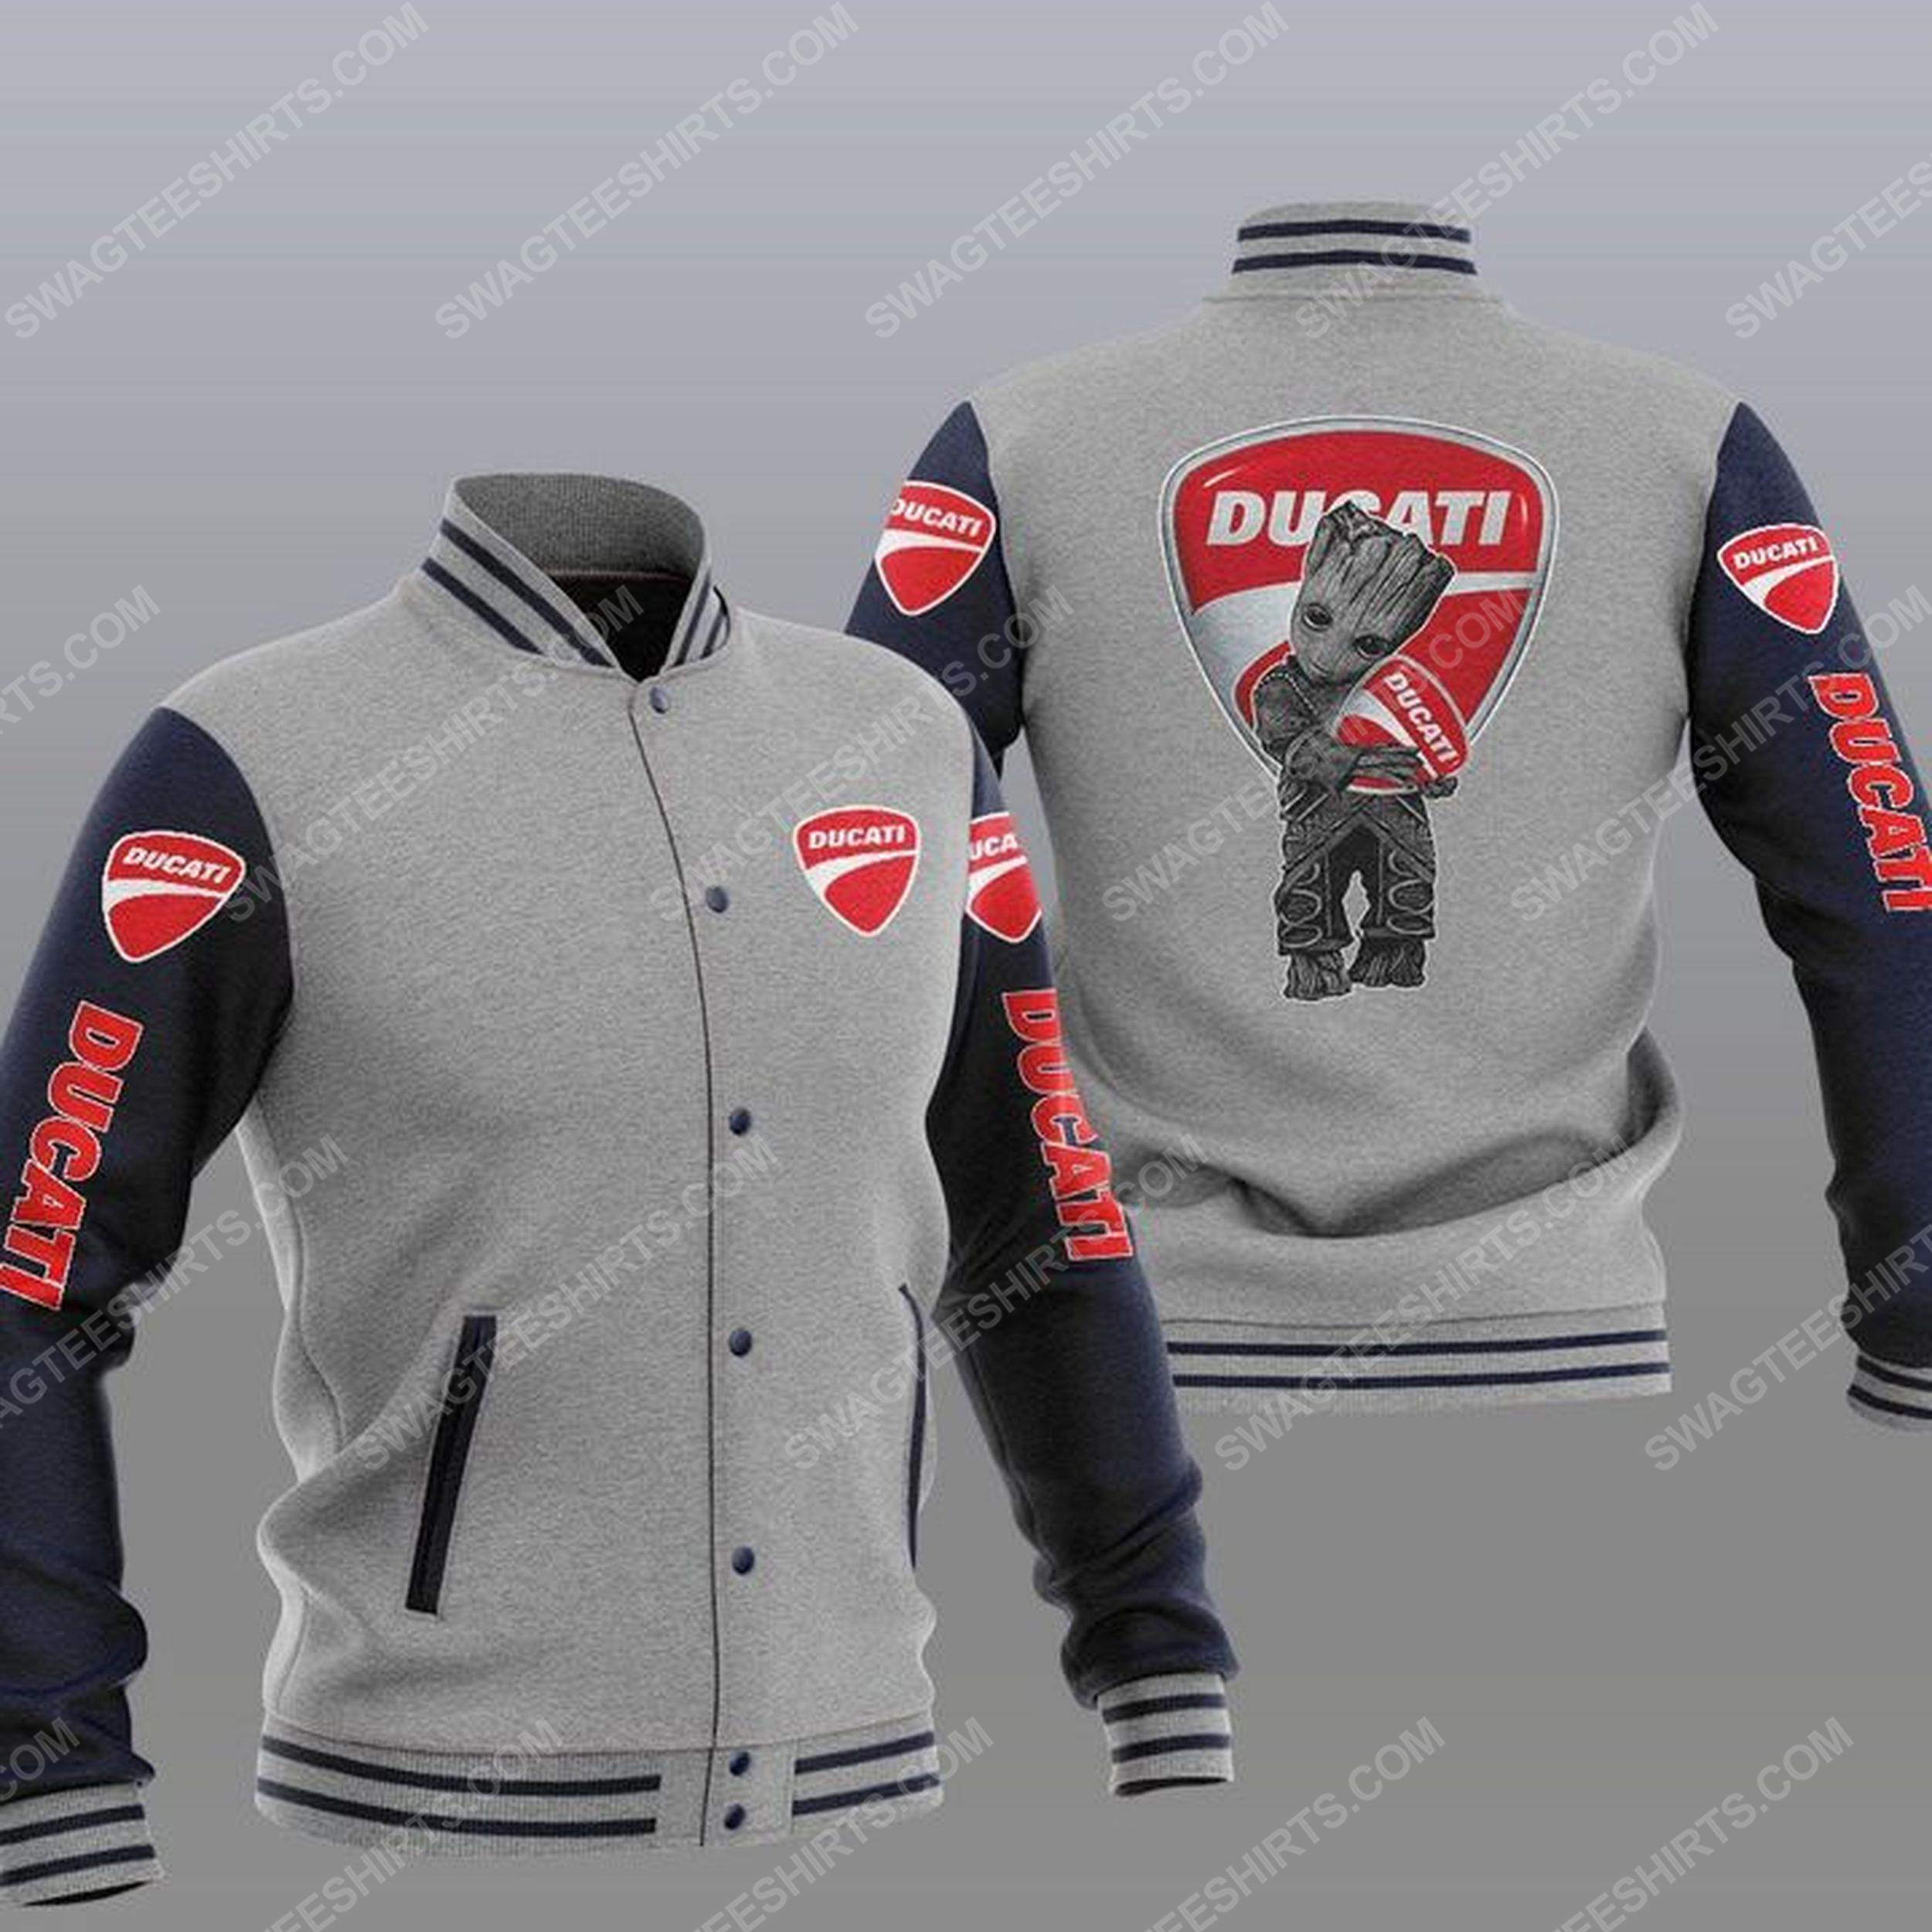 Baby groot and ducati all over print baseball jacket - gray 1